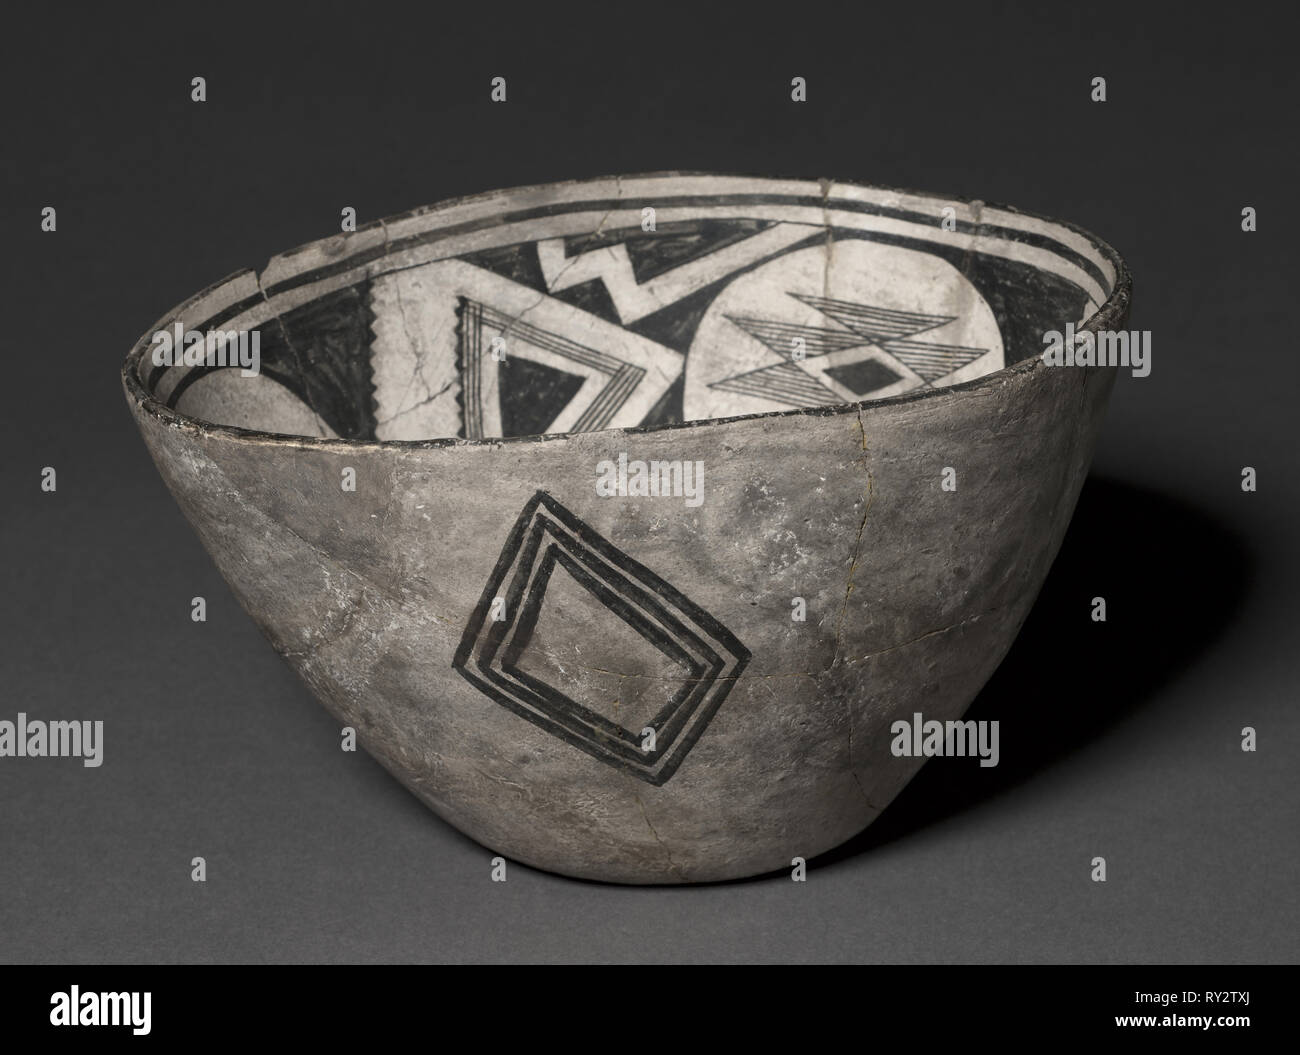 Bowl with Geometeric Design, Warped (Three-part Design), c 1000- 1150. Southwest,Mogollan, Mimbres, Pre-Contact Period, 11th-12th century. Ceramic; overall: 15.5 x 24 cm (6 1/8 x 9 7/16 in Stock Photo